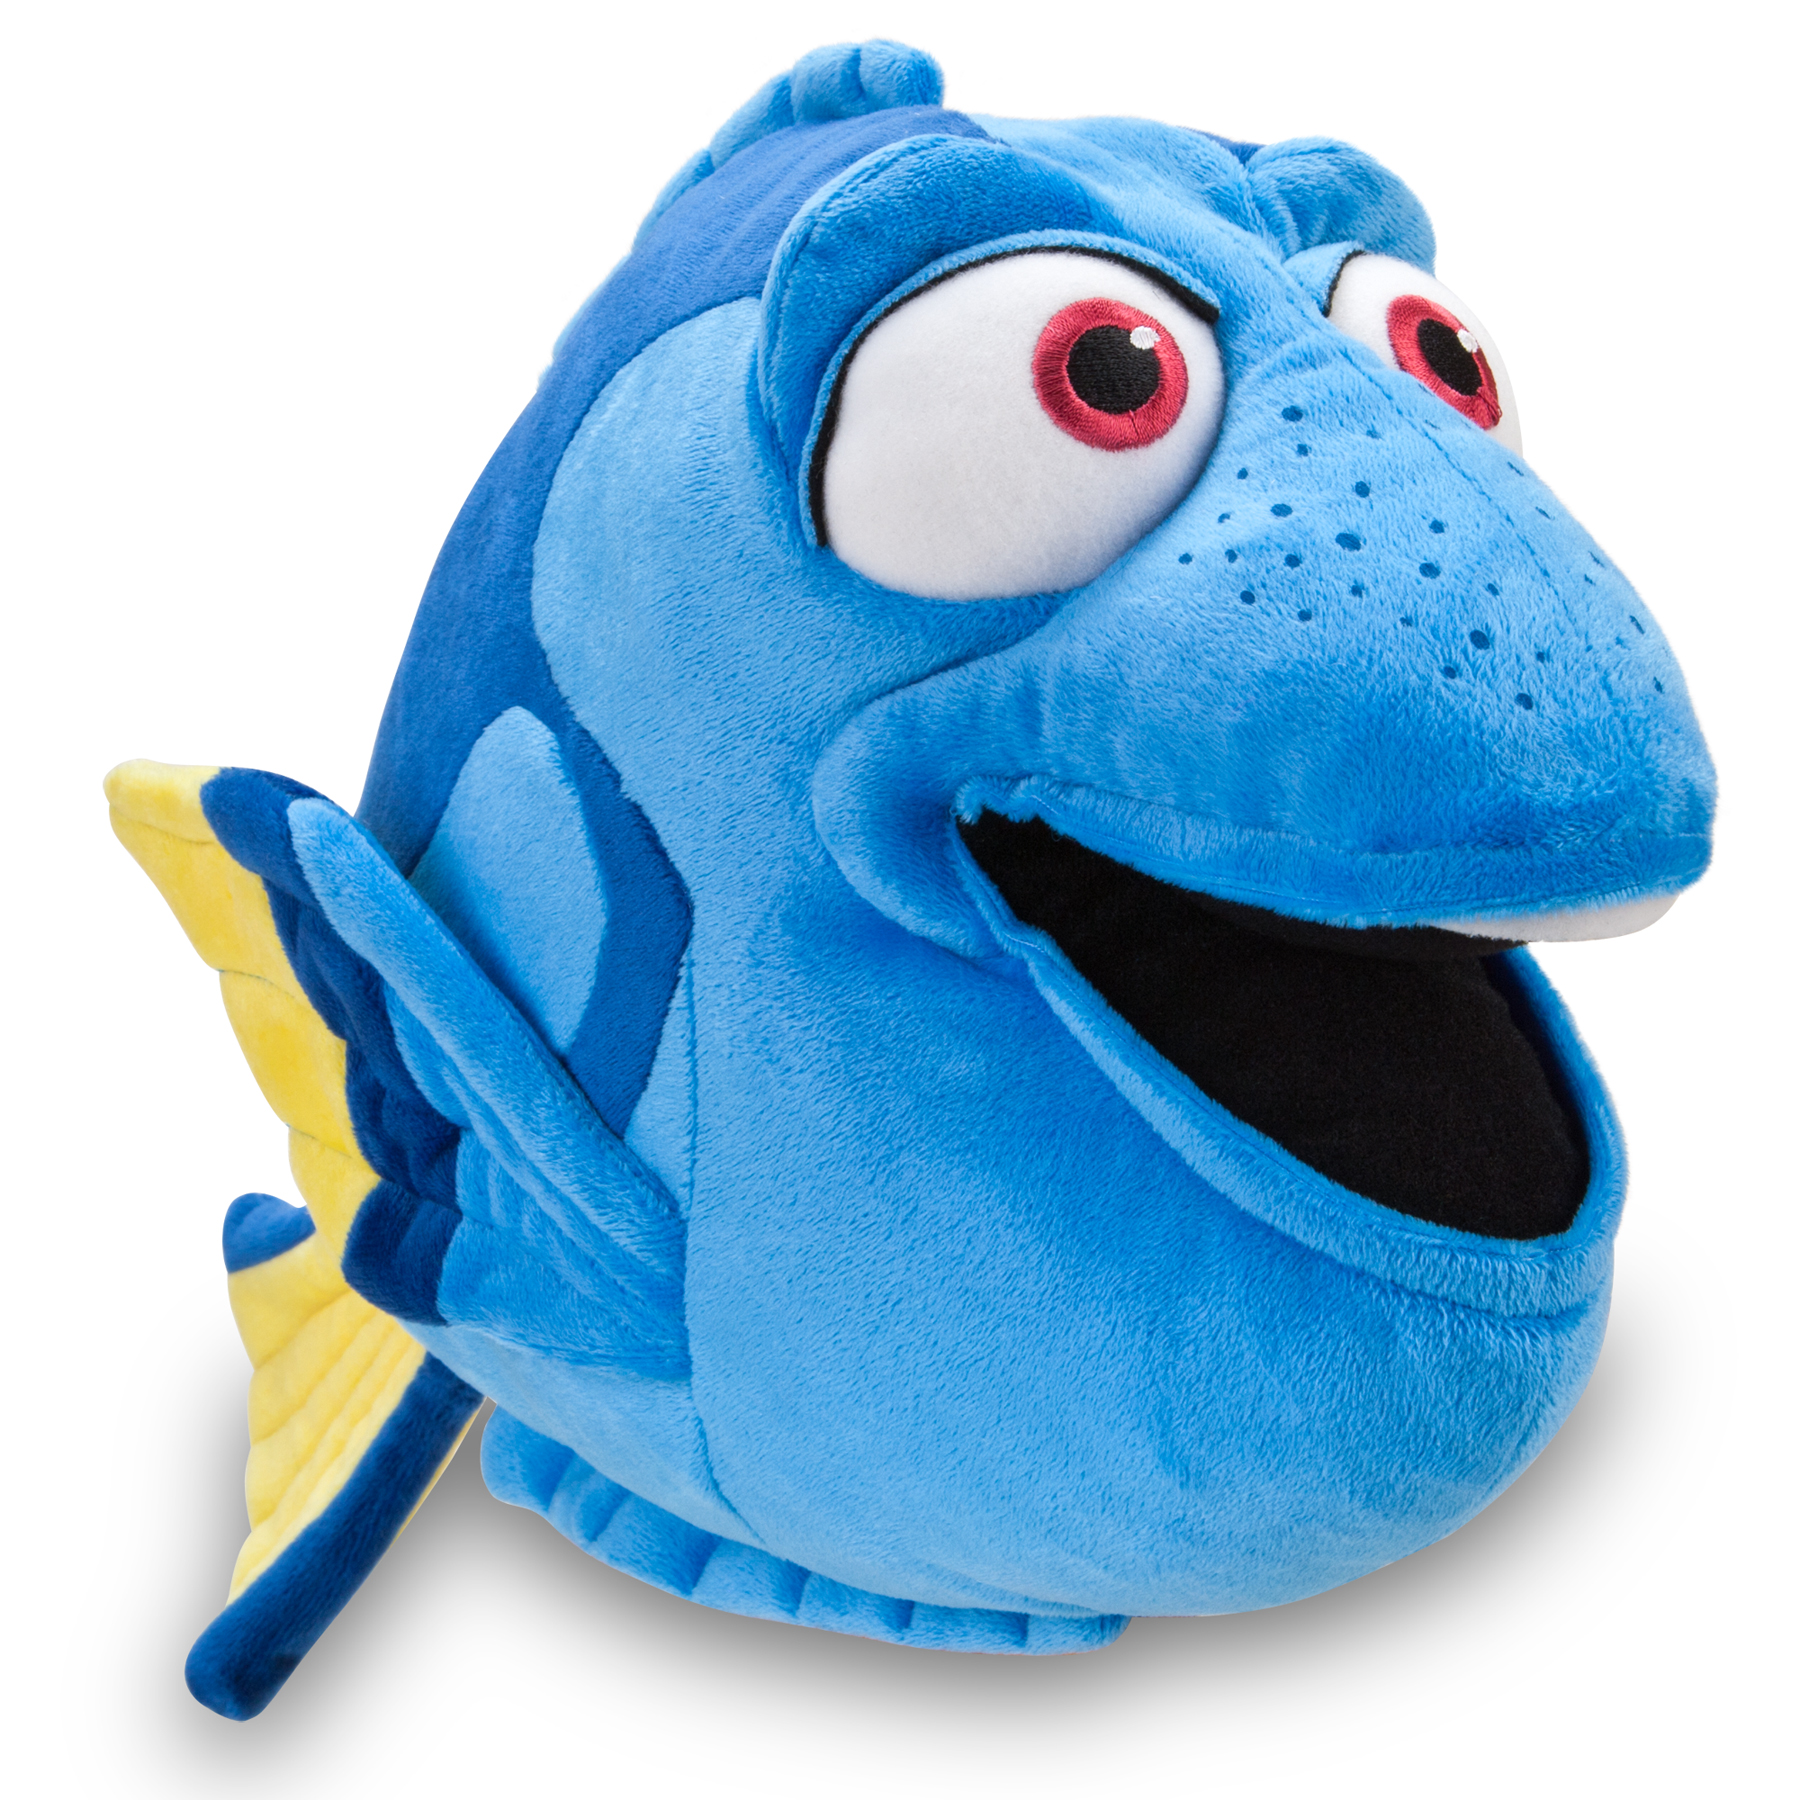 Squishy Little Animals : dory toy picture, dory toy image, dory toy wallpaper